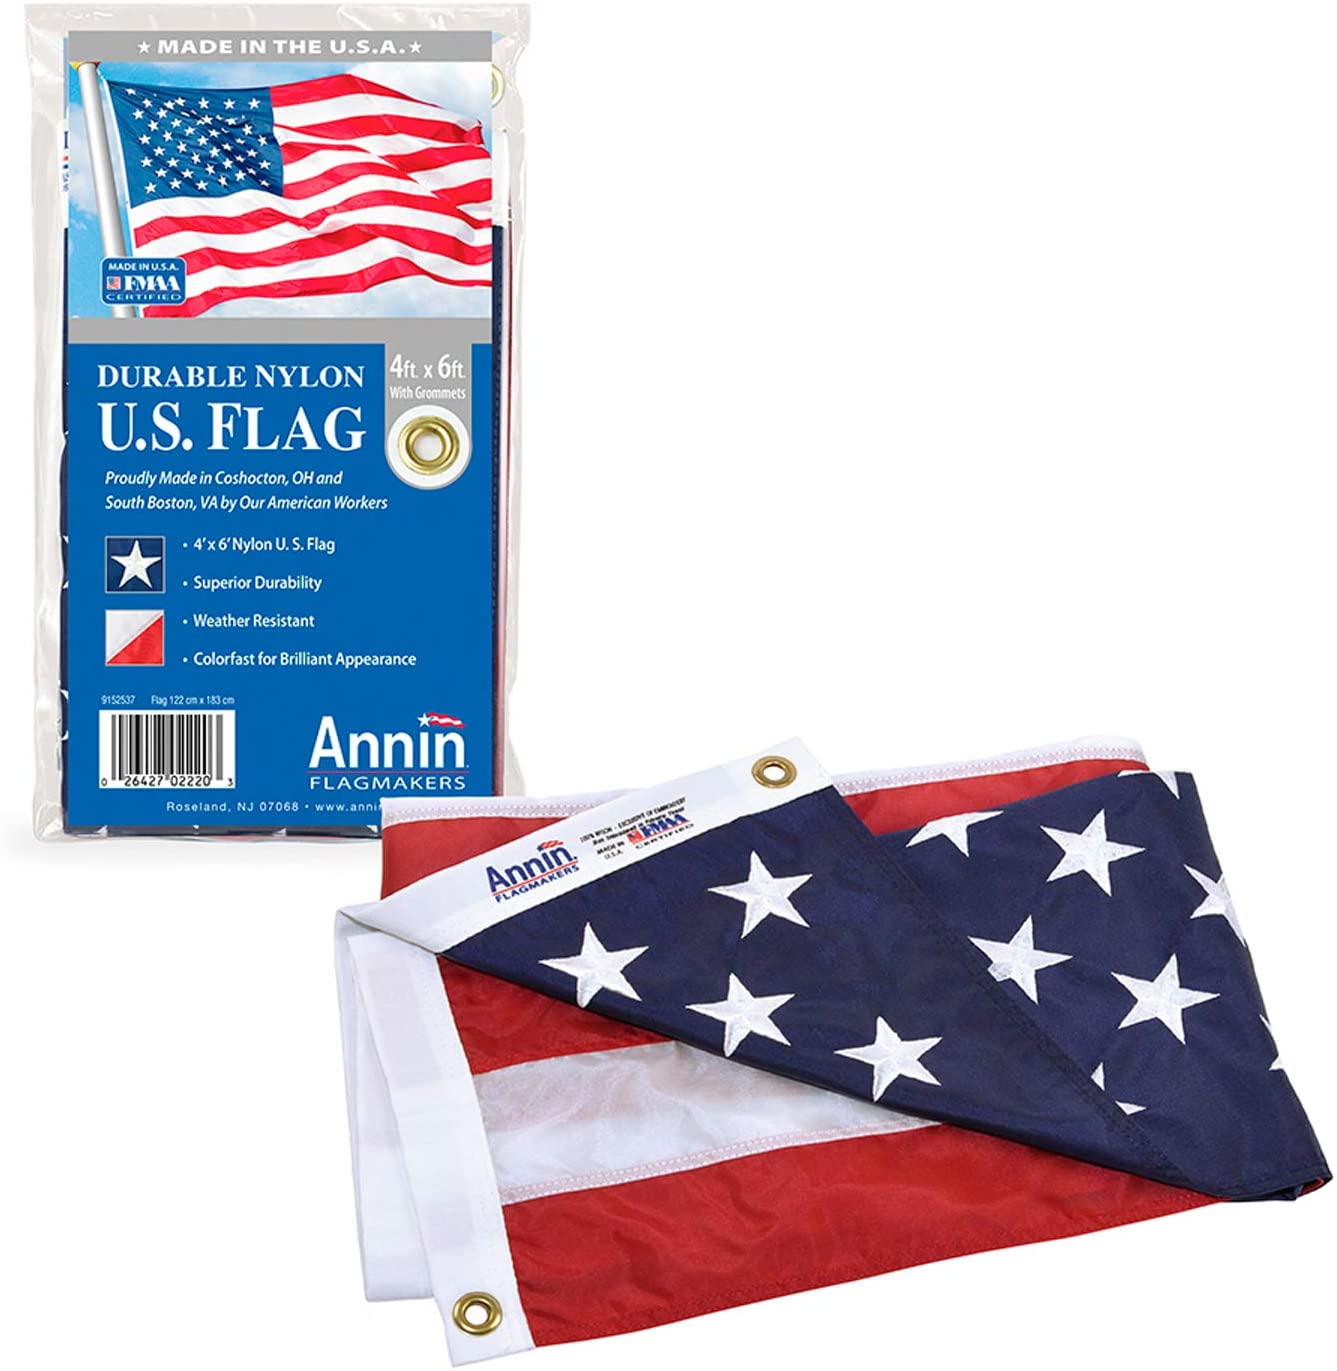 Annin Flagmakers 2220 American National Nylon Flag Fresno Mall All-Weather Max 59% OFF S